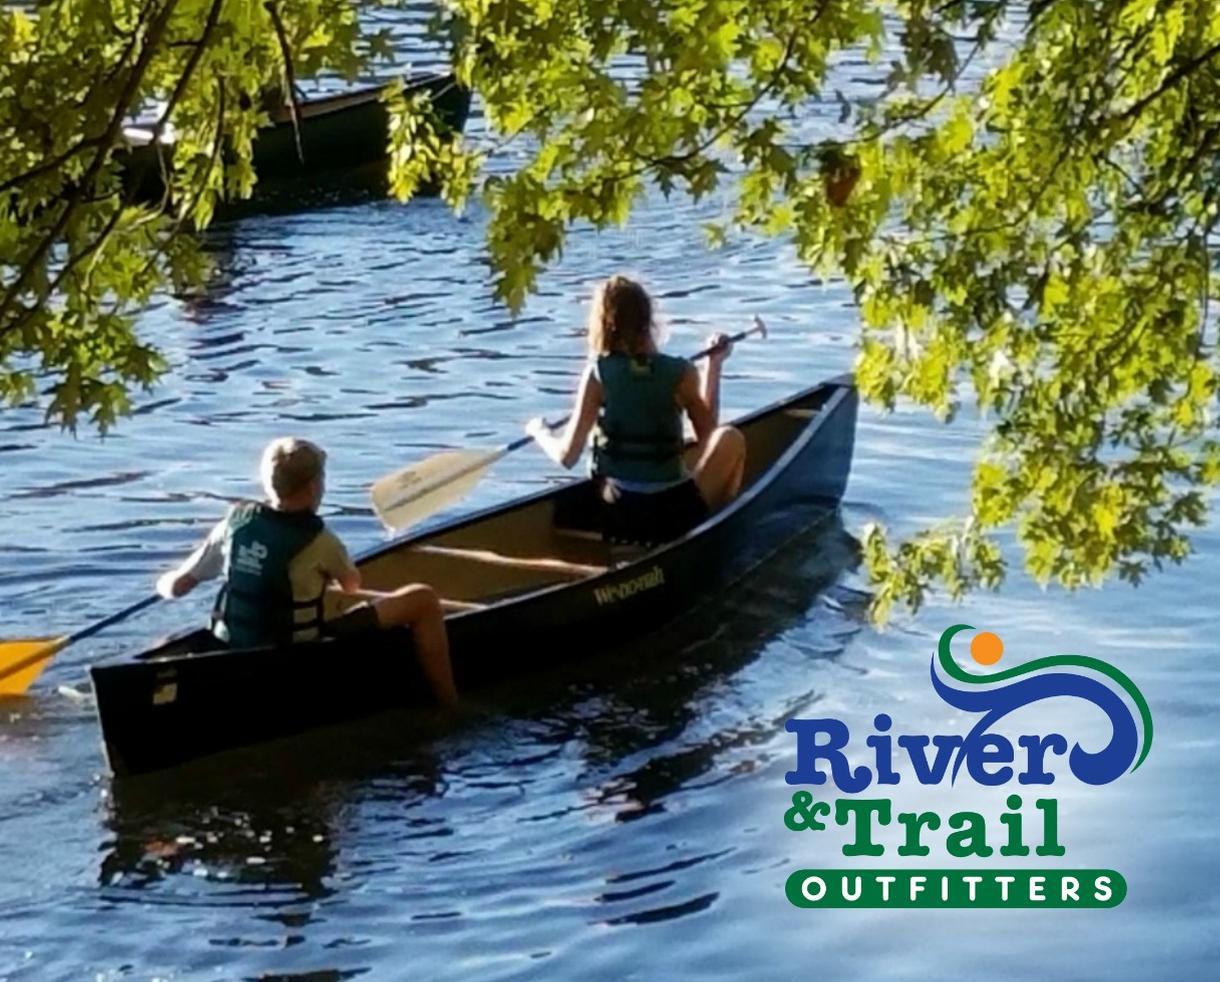 River and Trail Outfitters' Park & Paddle – Kayak and Canoe Adventures